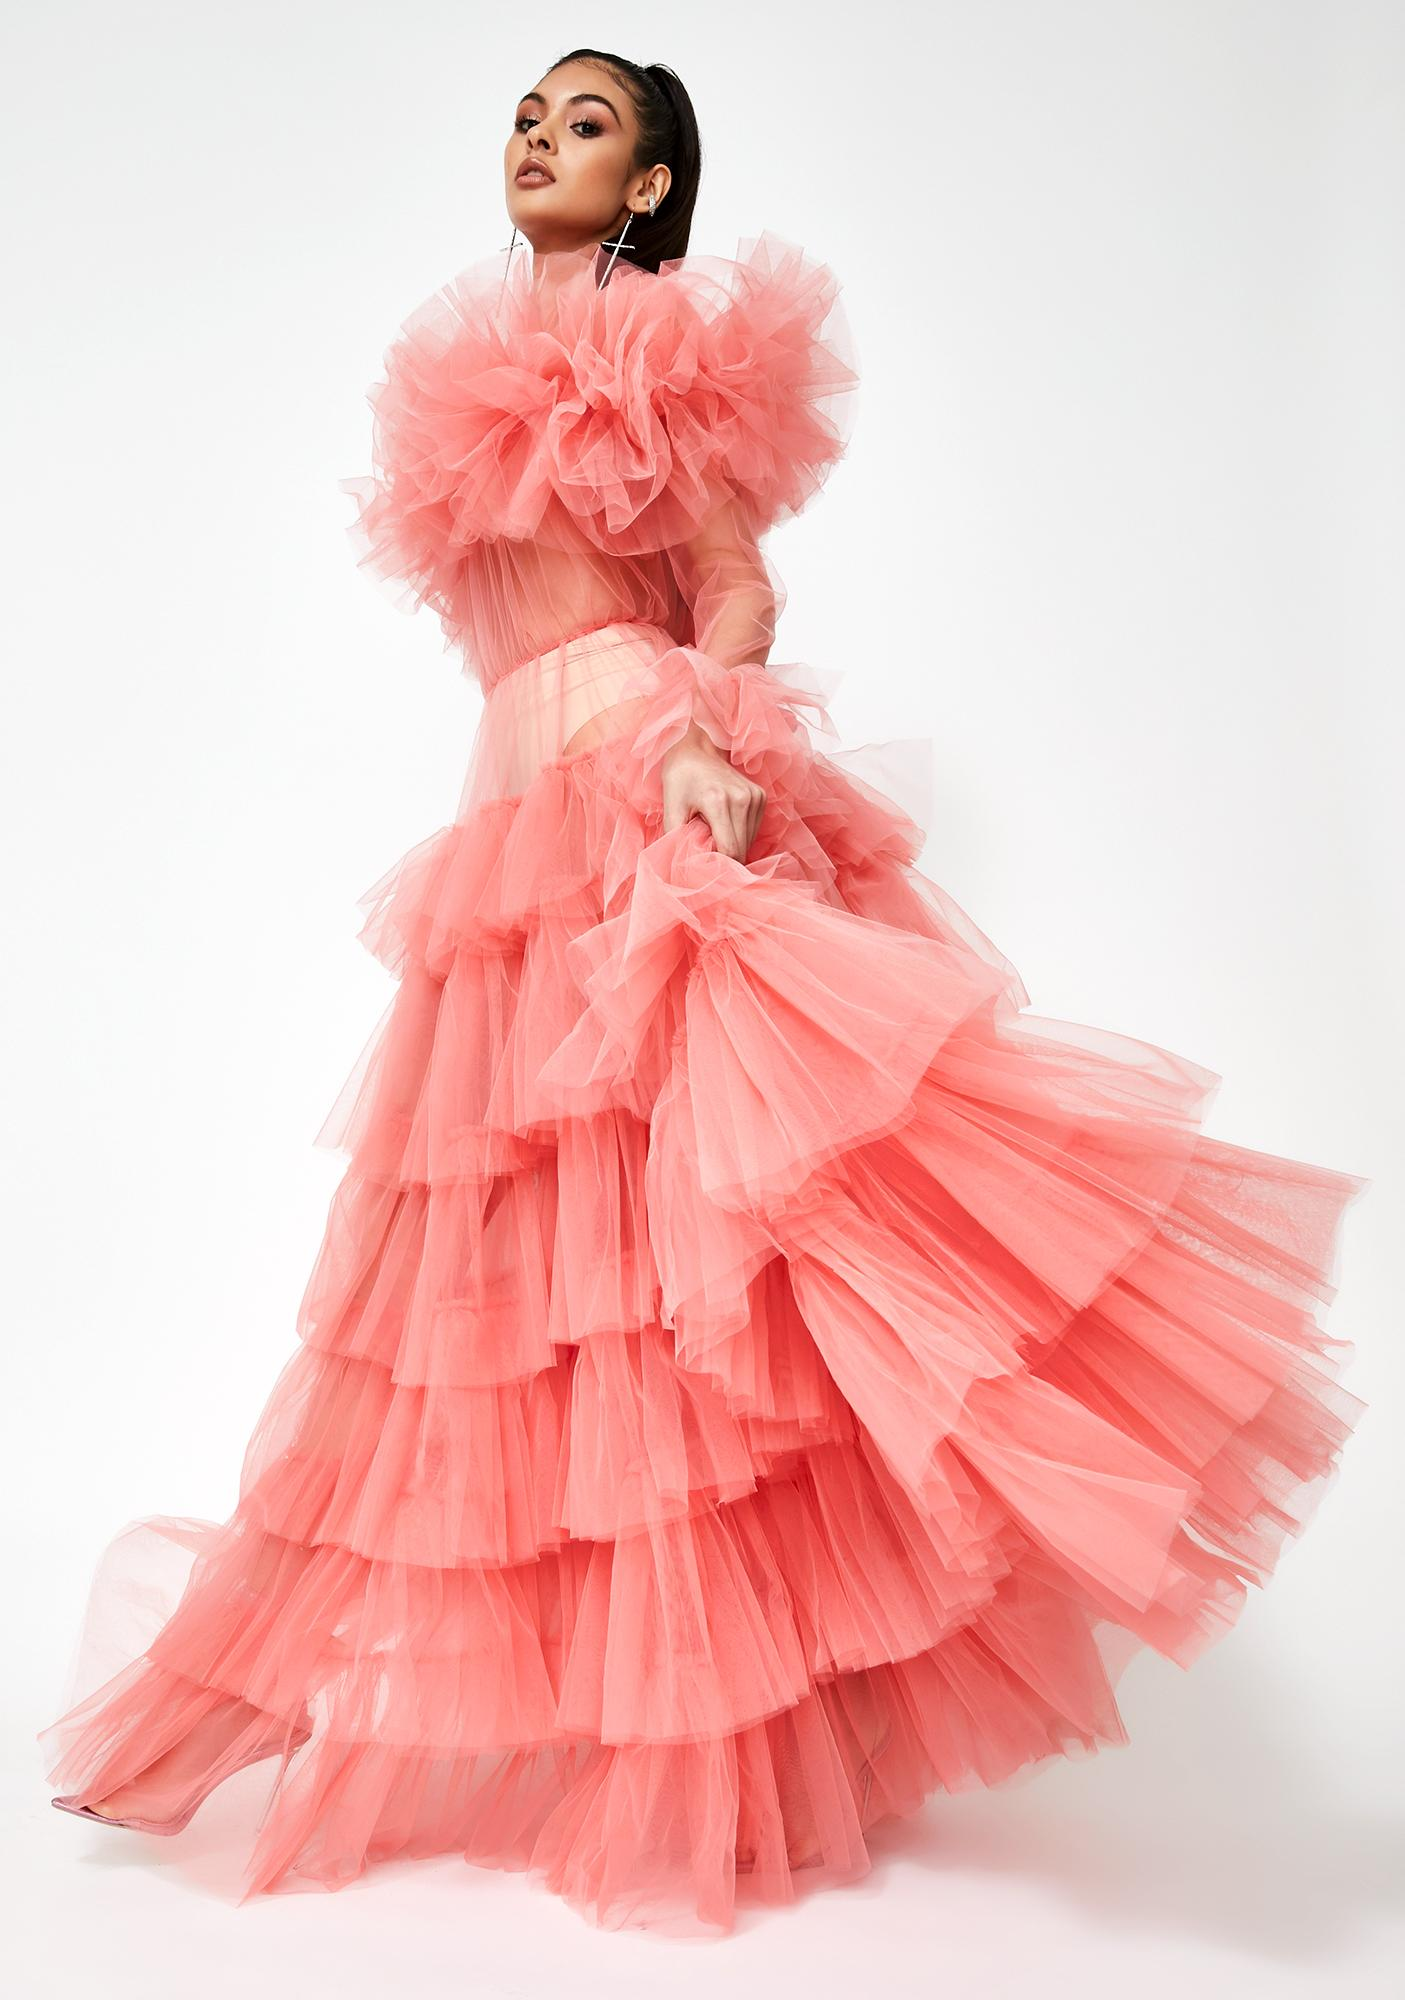 Kiki Riki It Grl Galore Tulle Dress